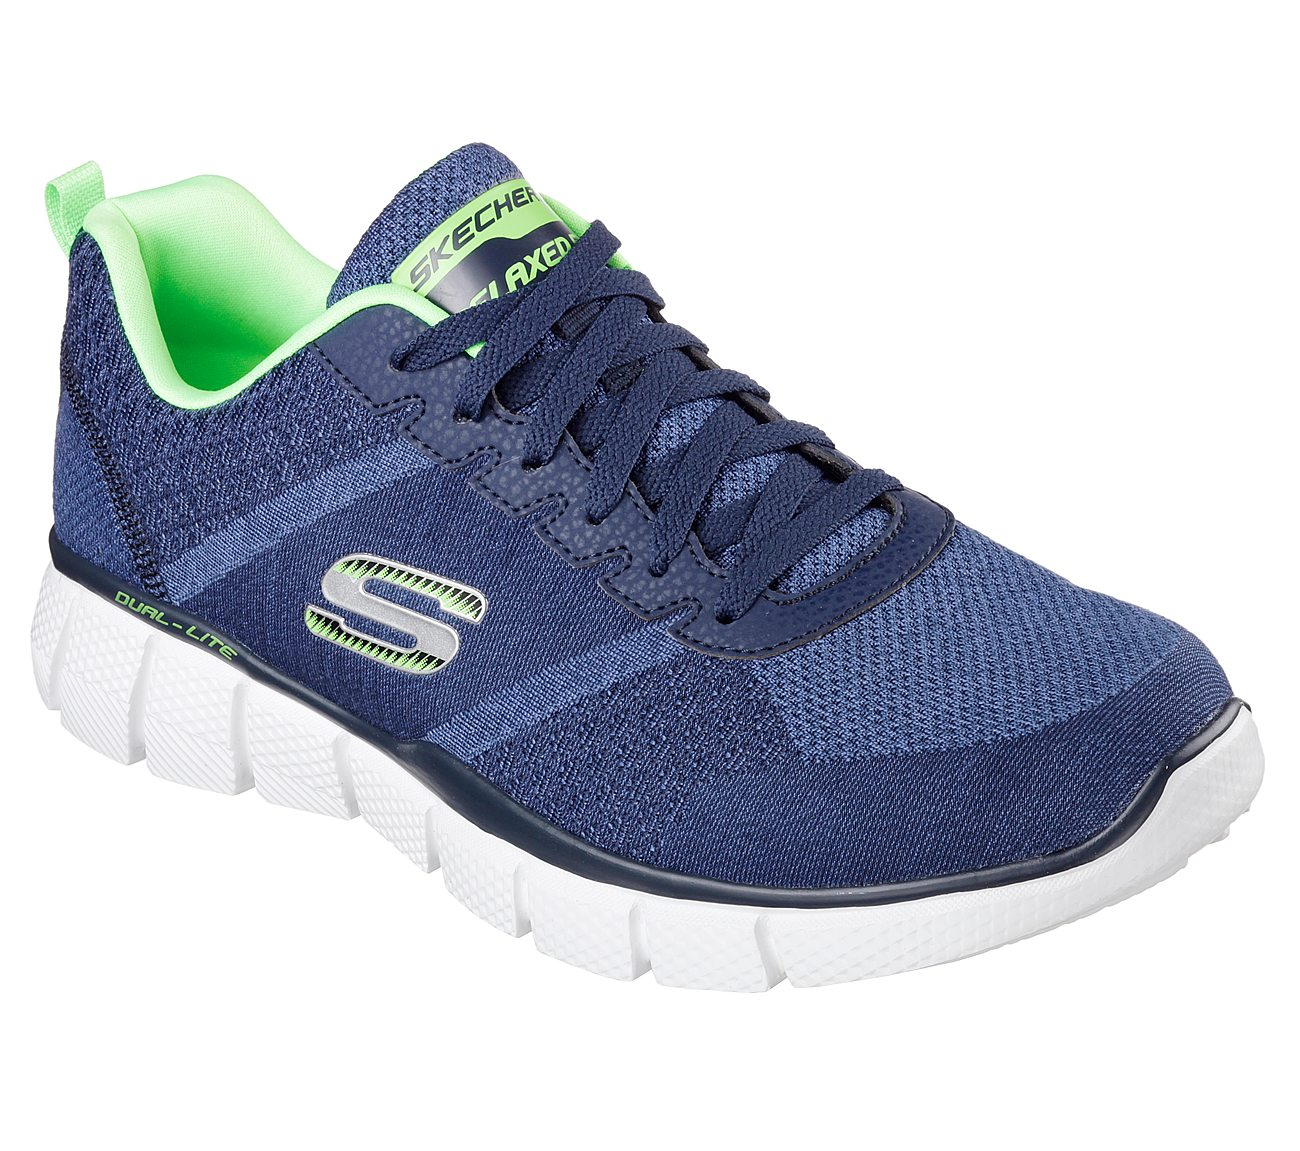 654fc5baaeb9 Buy SKECHERS Equalizer 2.0 - True Balance SKECHERS Sport Shoes only ...